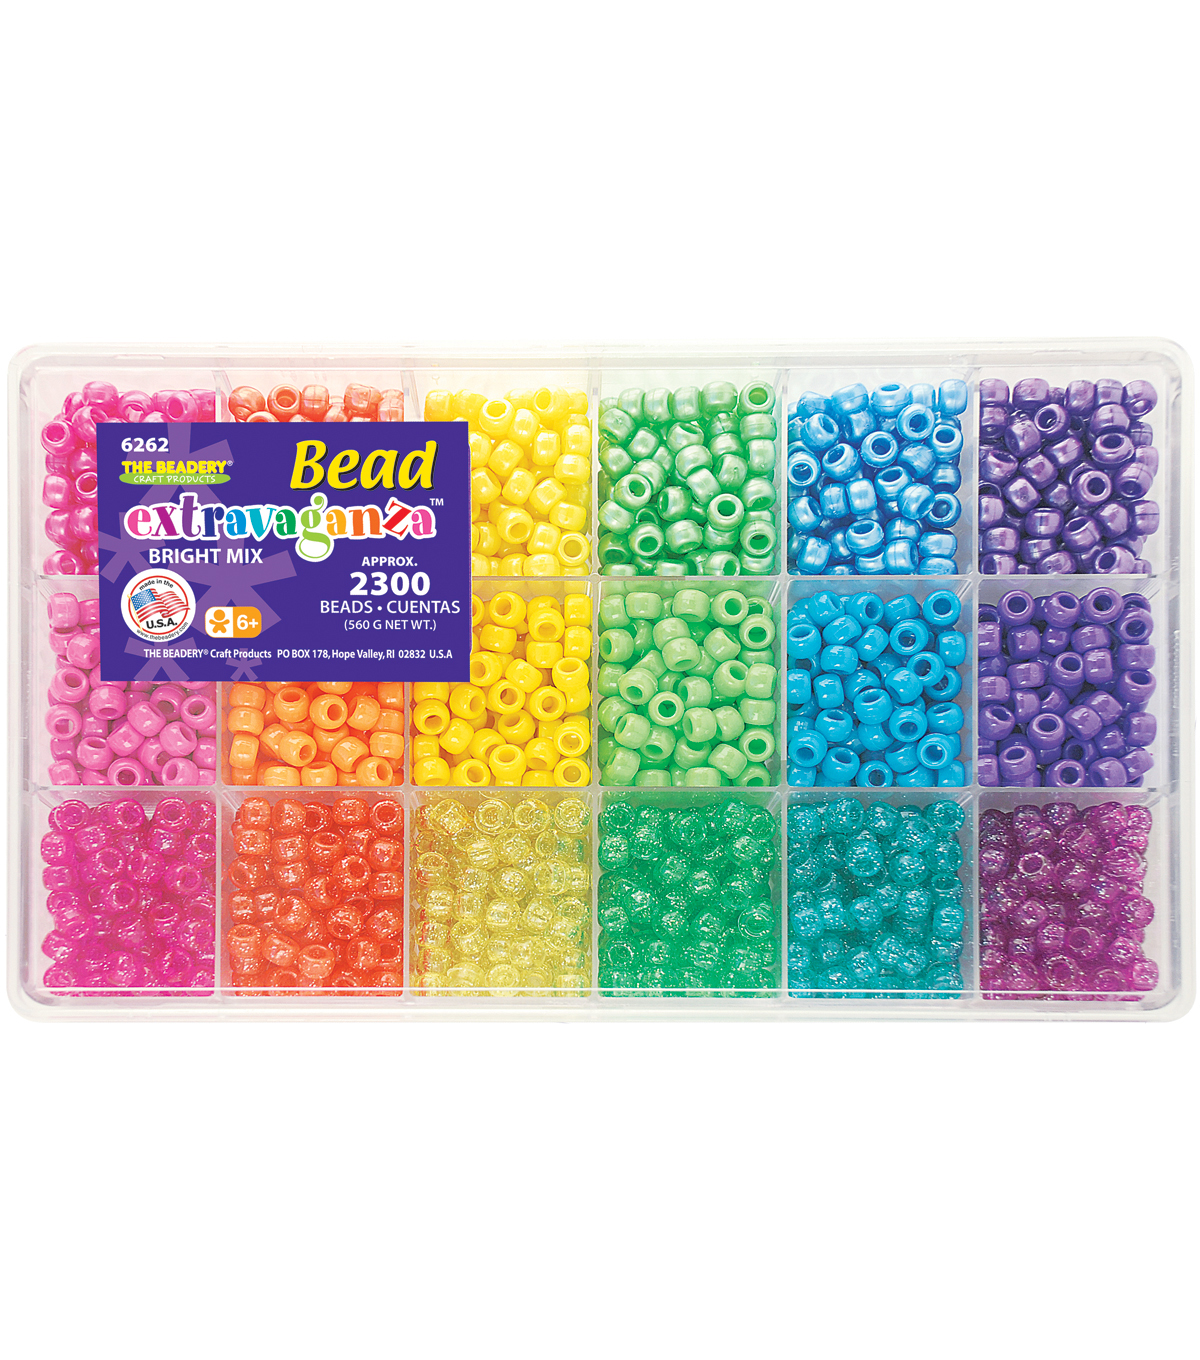 Bead Extravaganza Bead Box Kit 19.75oz/Pkg-Brights